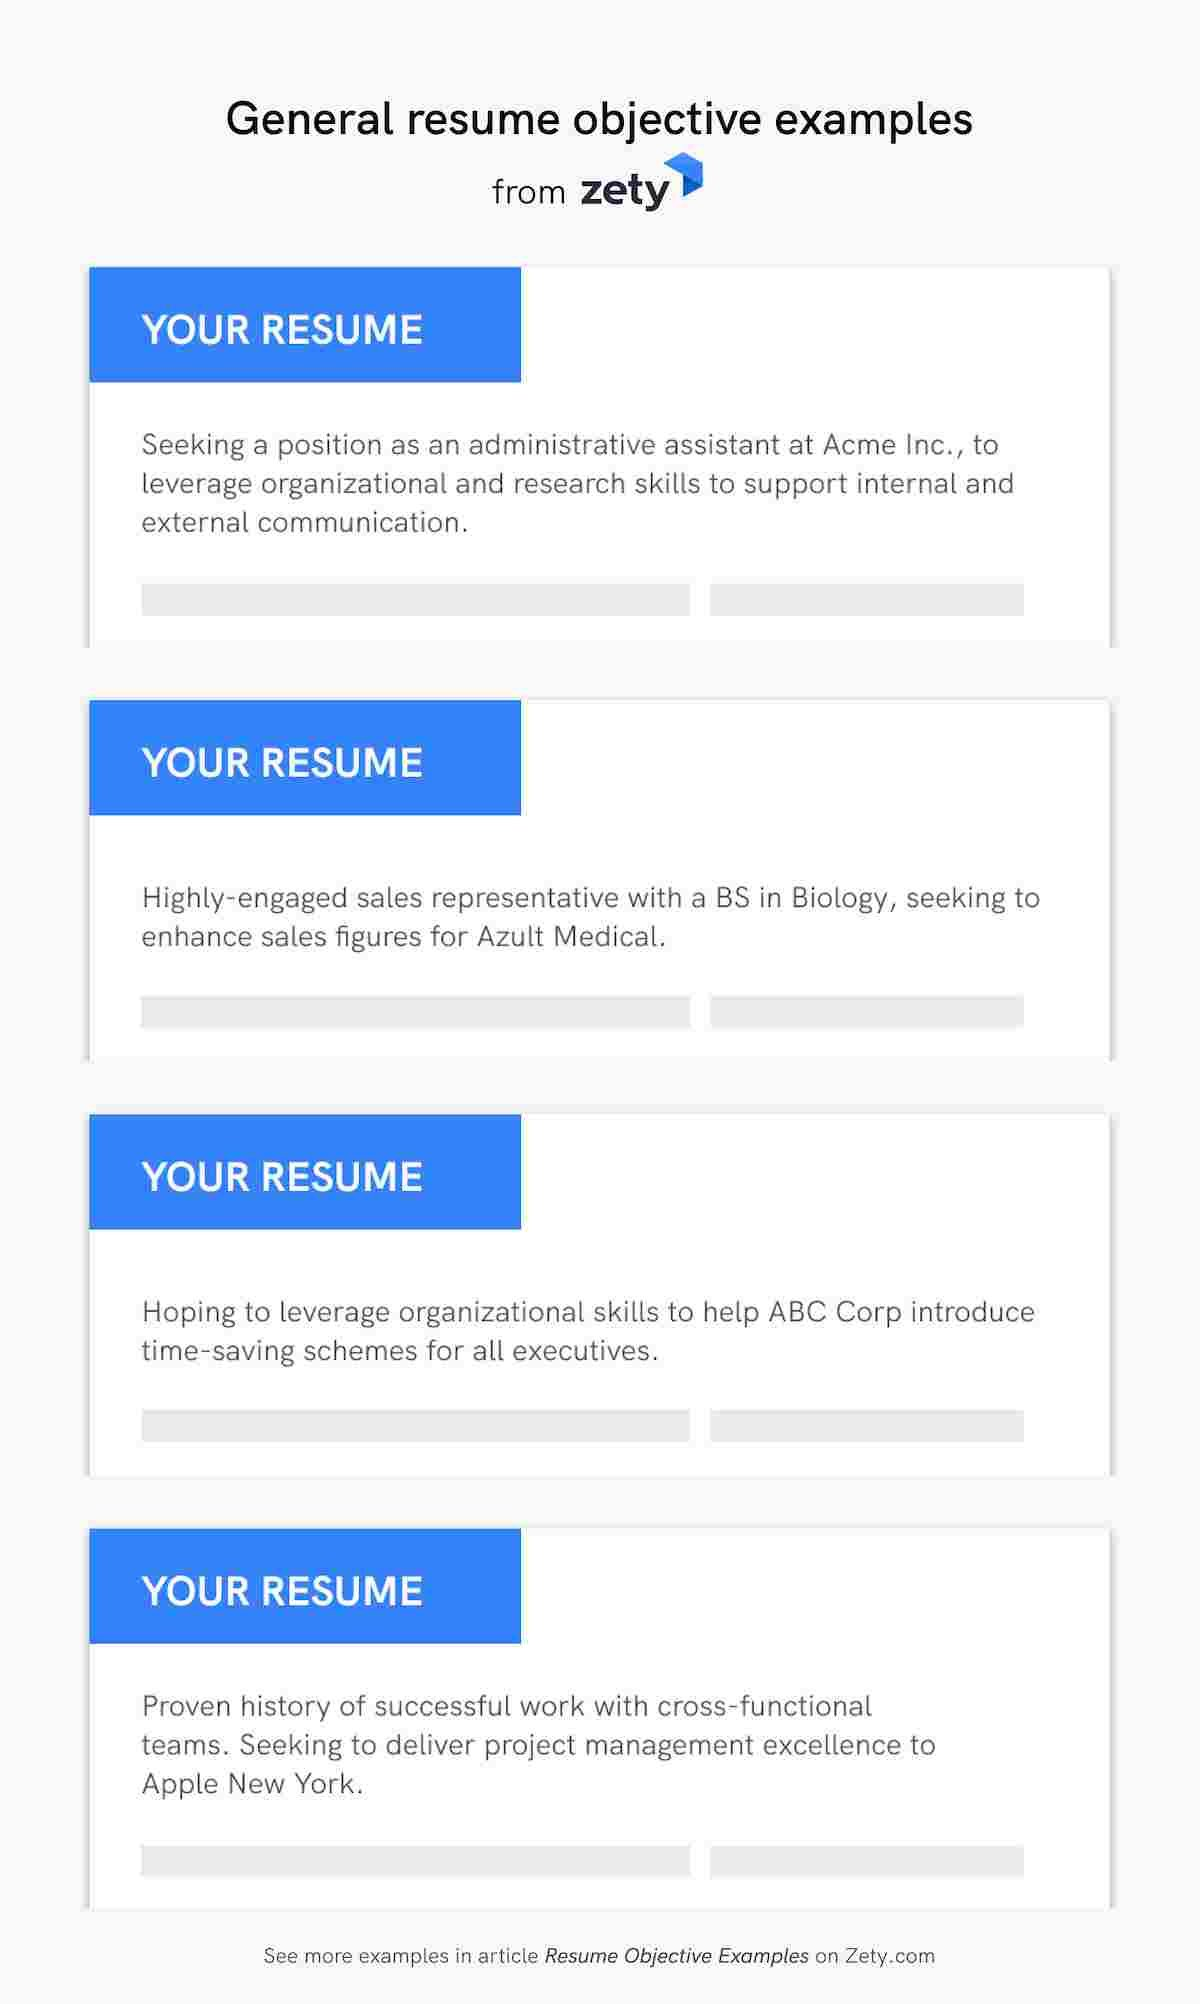 resume objective examples career objectives for all jobs generic general can you put Resume Generic Resume Objective